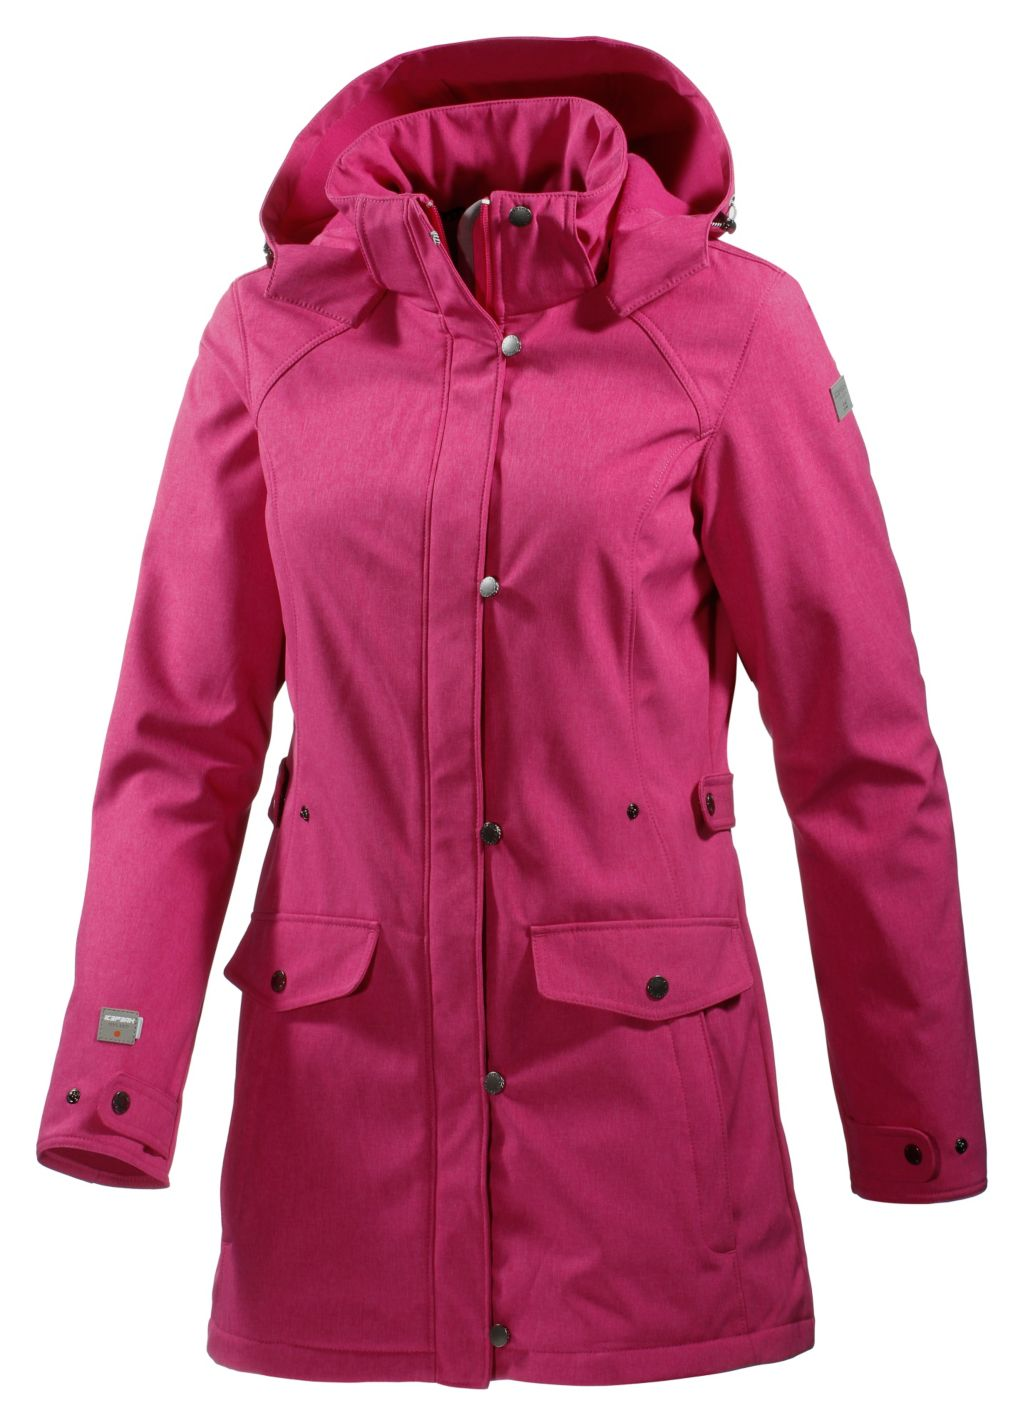 Ice Peak Vyra Softshellmantel Damen in rosa, Größe 42